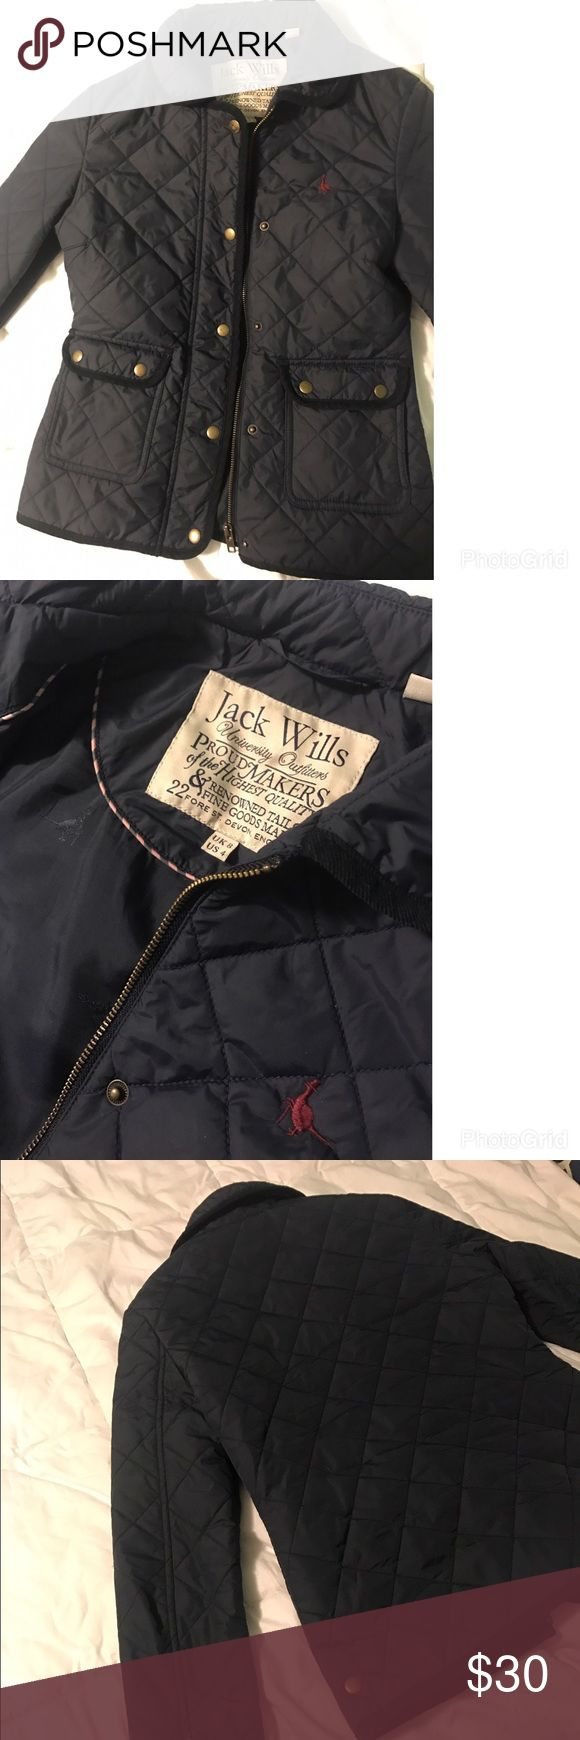 Jack Wills navy quilted jacket size 4 Jack Wills navy blue quilted jacket. Size 4 but fits like a size 2. Lightweight, perfect for fall or spring! Jack Wills Jackets & Coats